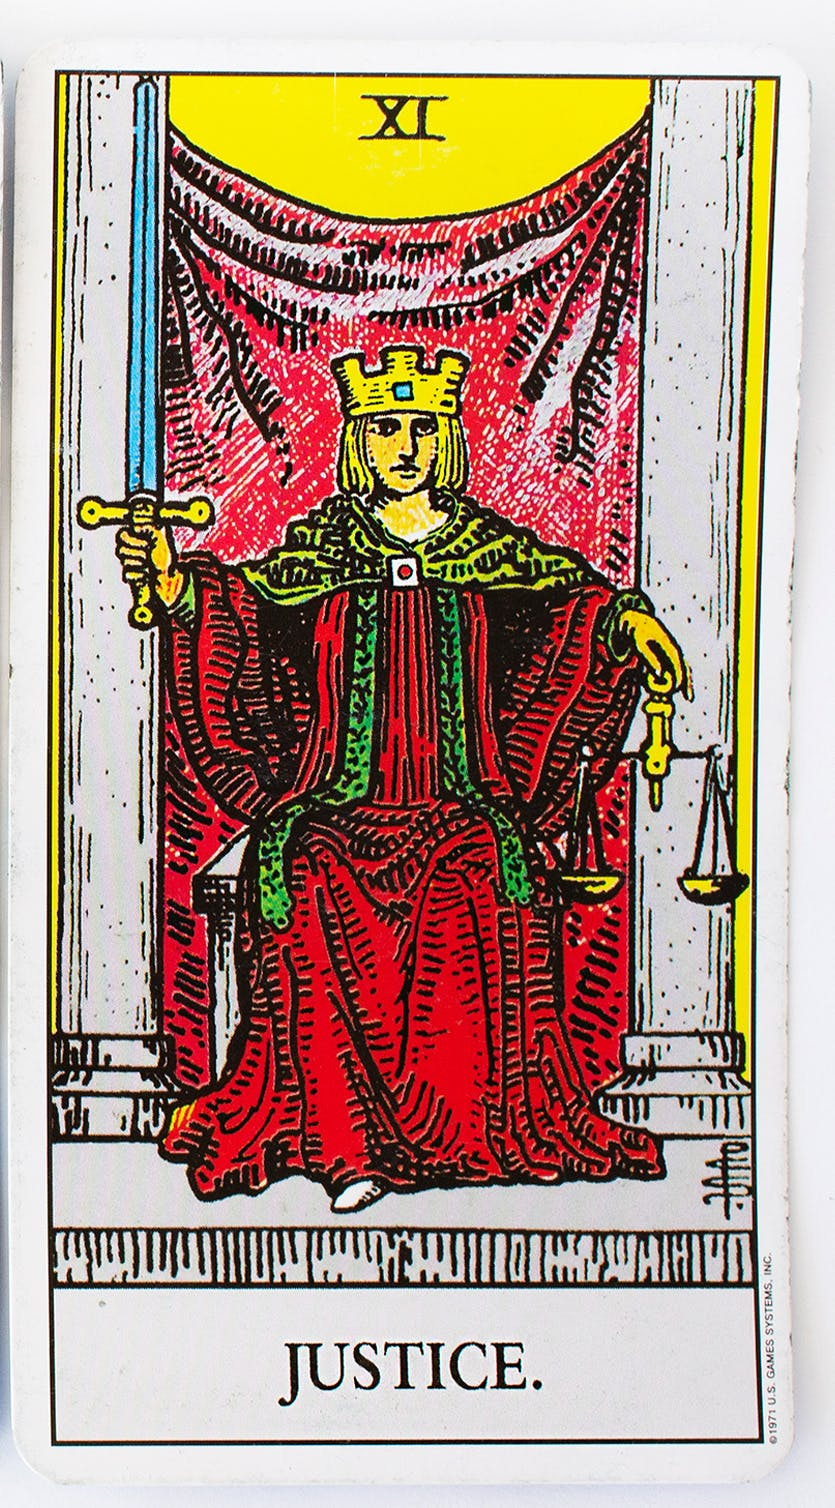 The justice card from the rider-waite deck. Features an image of a person sitting in a throne wearing a red robe and a crown, holding a set of scales in one hand and a sword in the other.